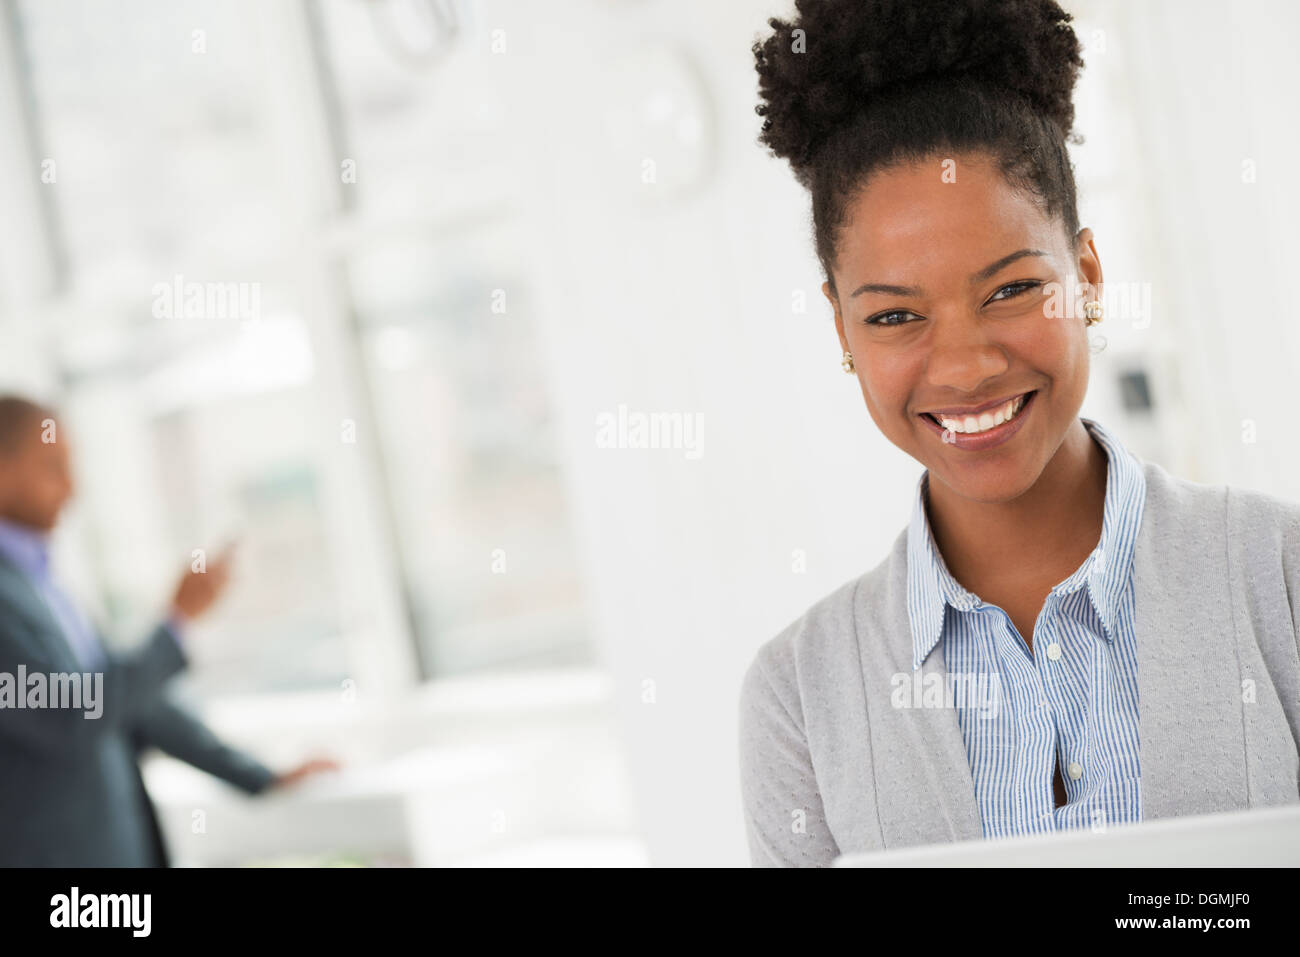 Business people. A young woman smiling. - Stock Image